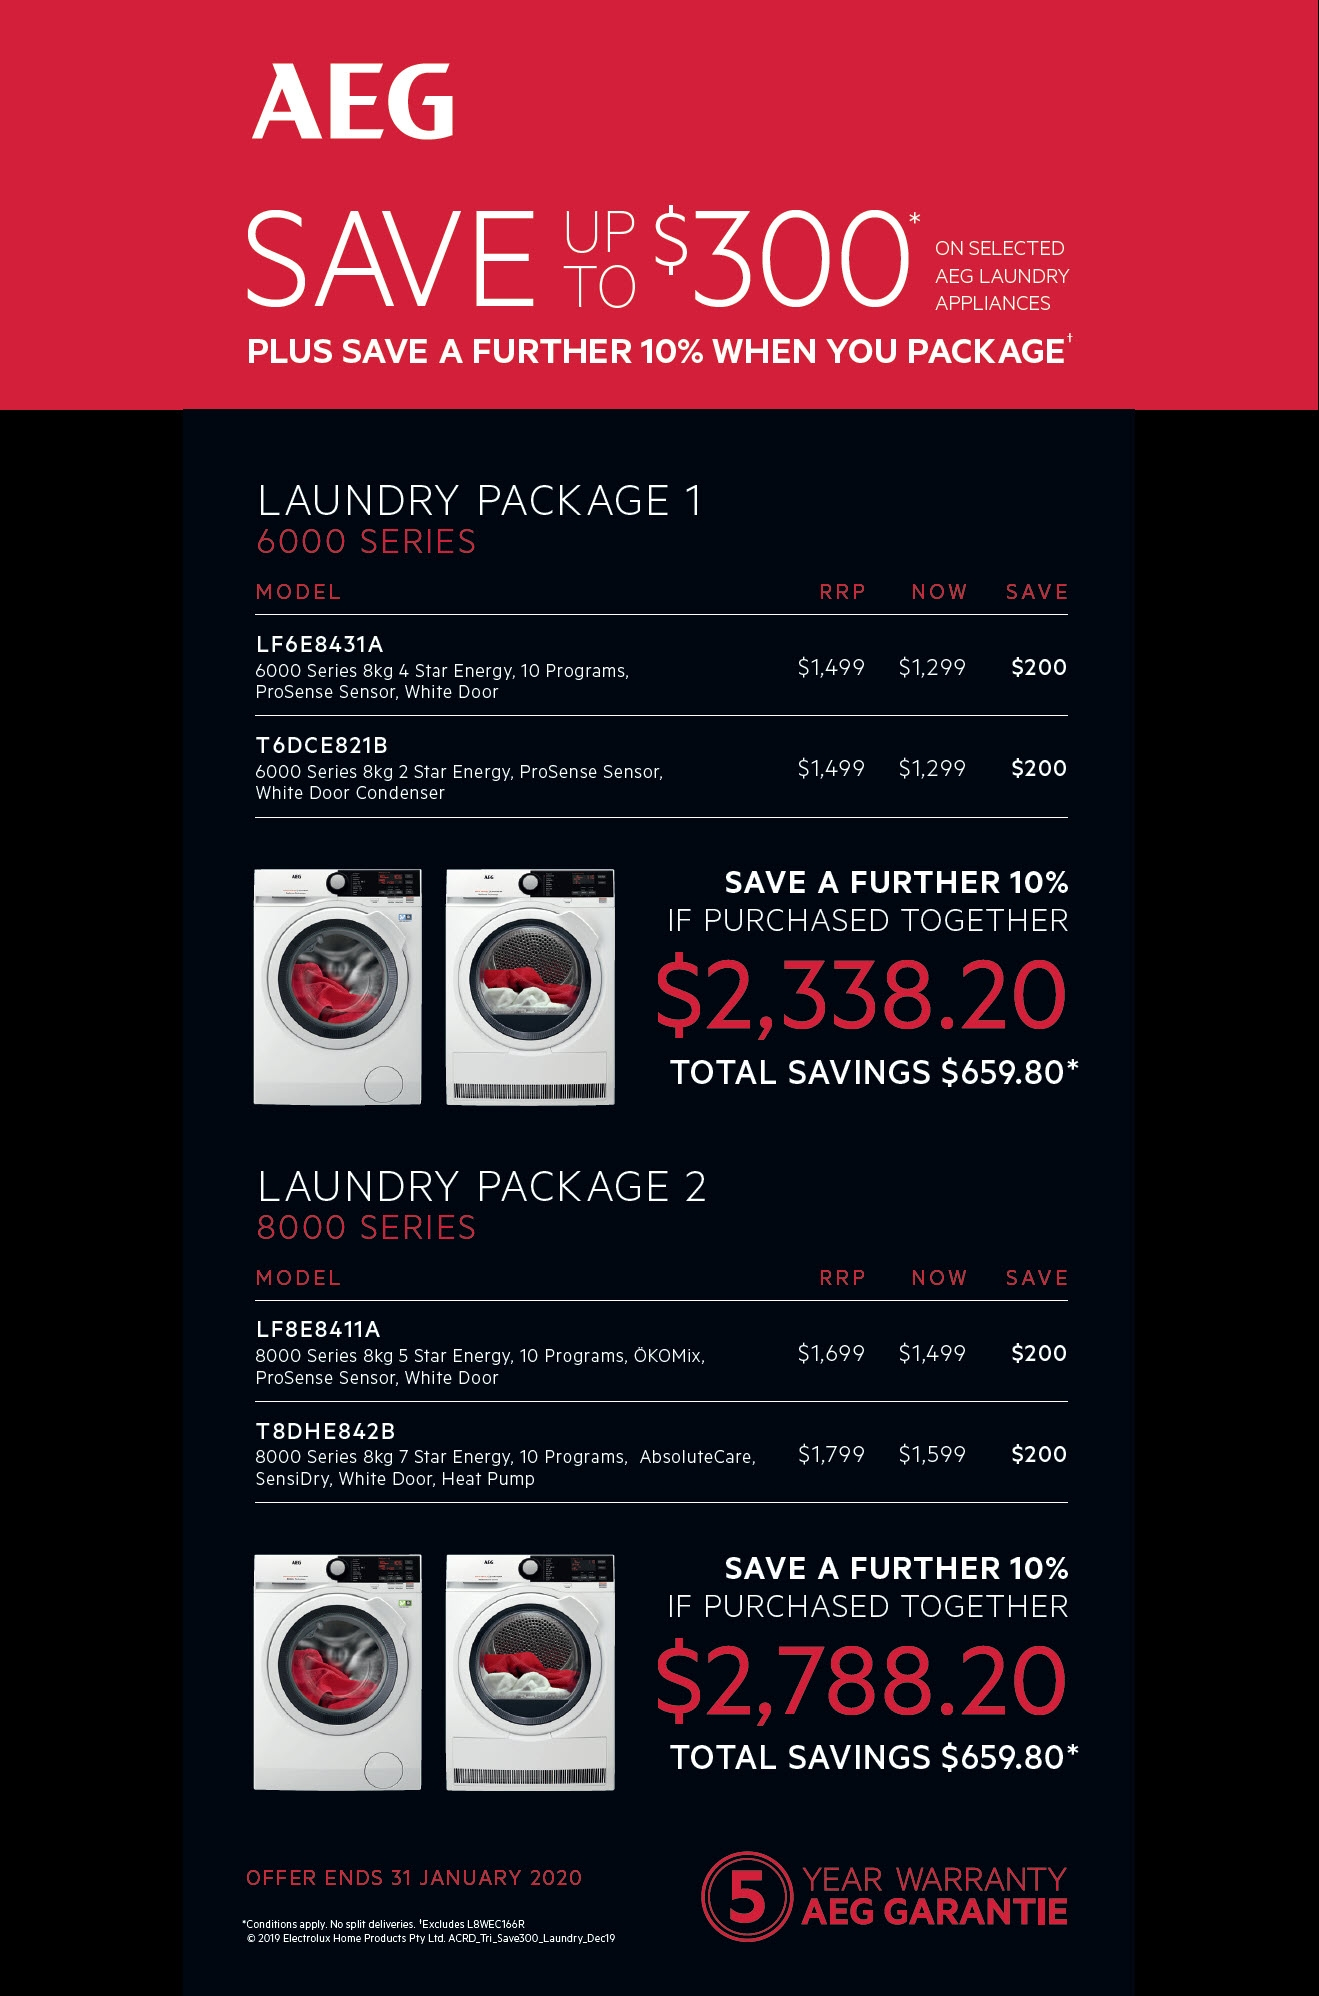 AEG Save $300 on Selected Laundry Package